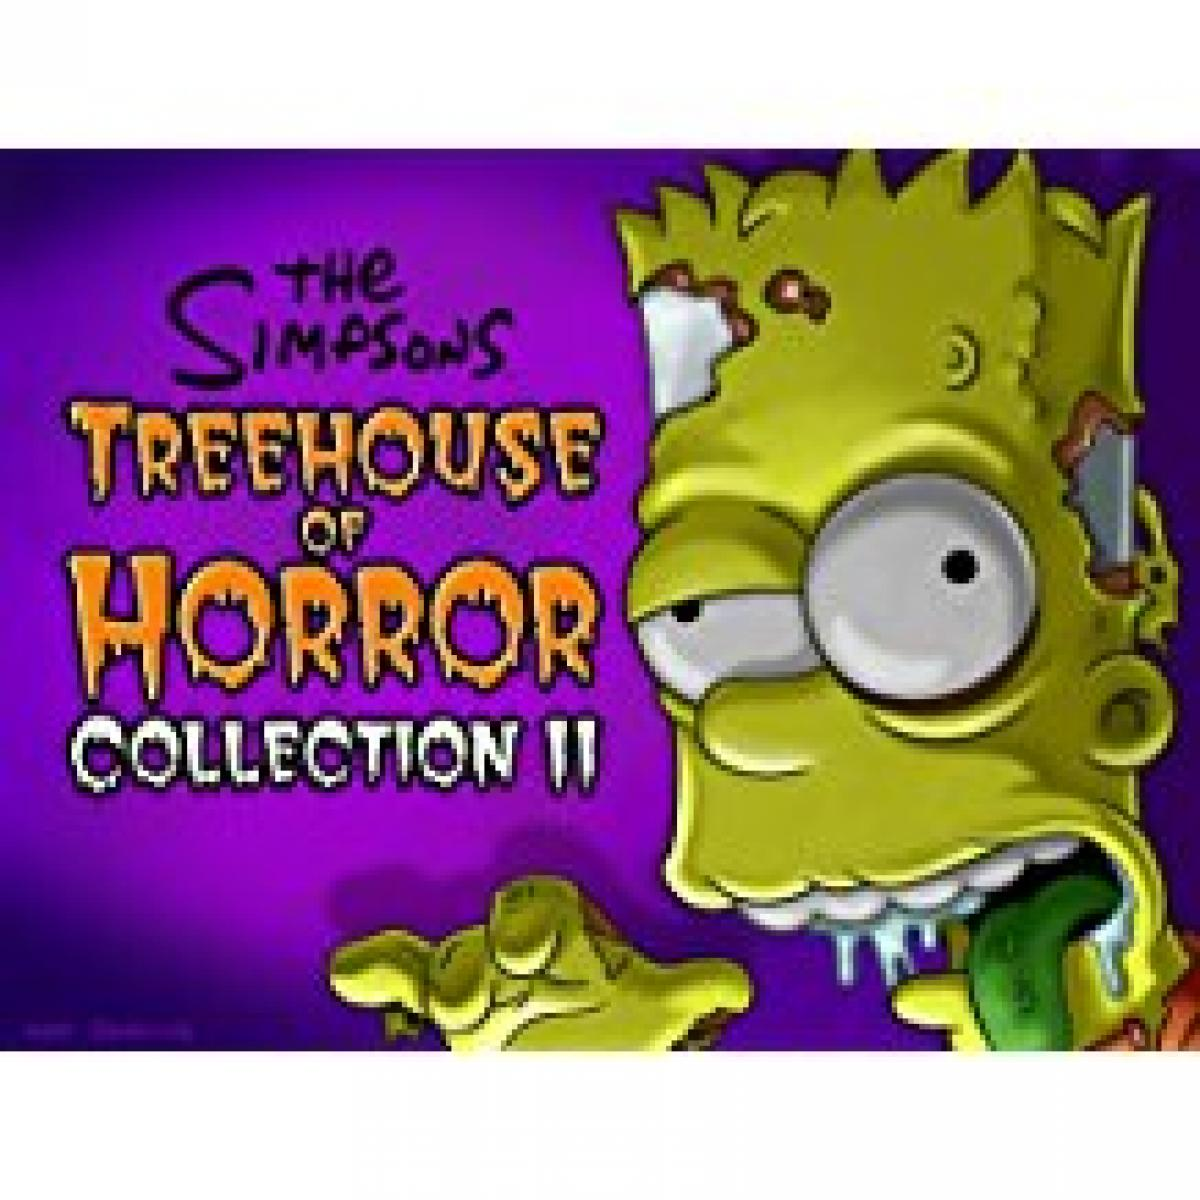 The Simpsons: Treehouse of Horror (Collection II)